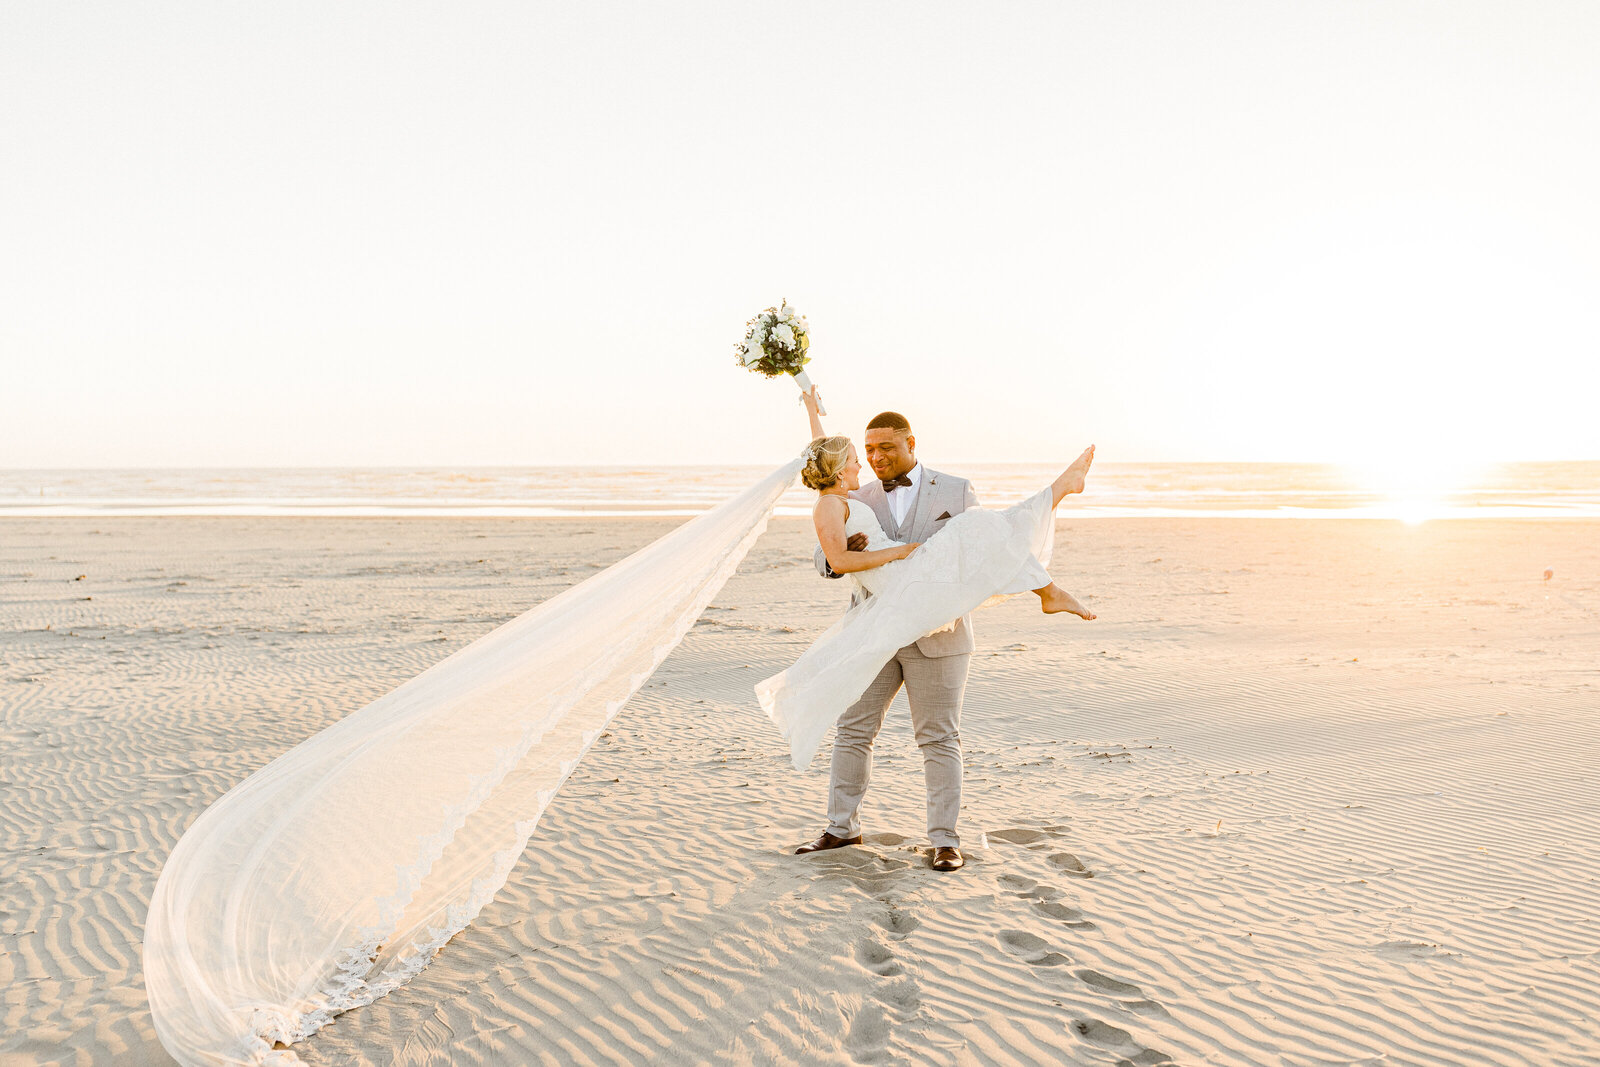 sunset beach elopement at cannon beach, oregon